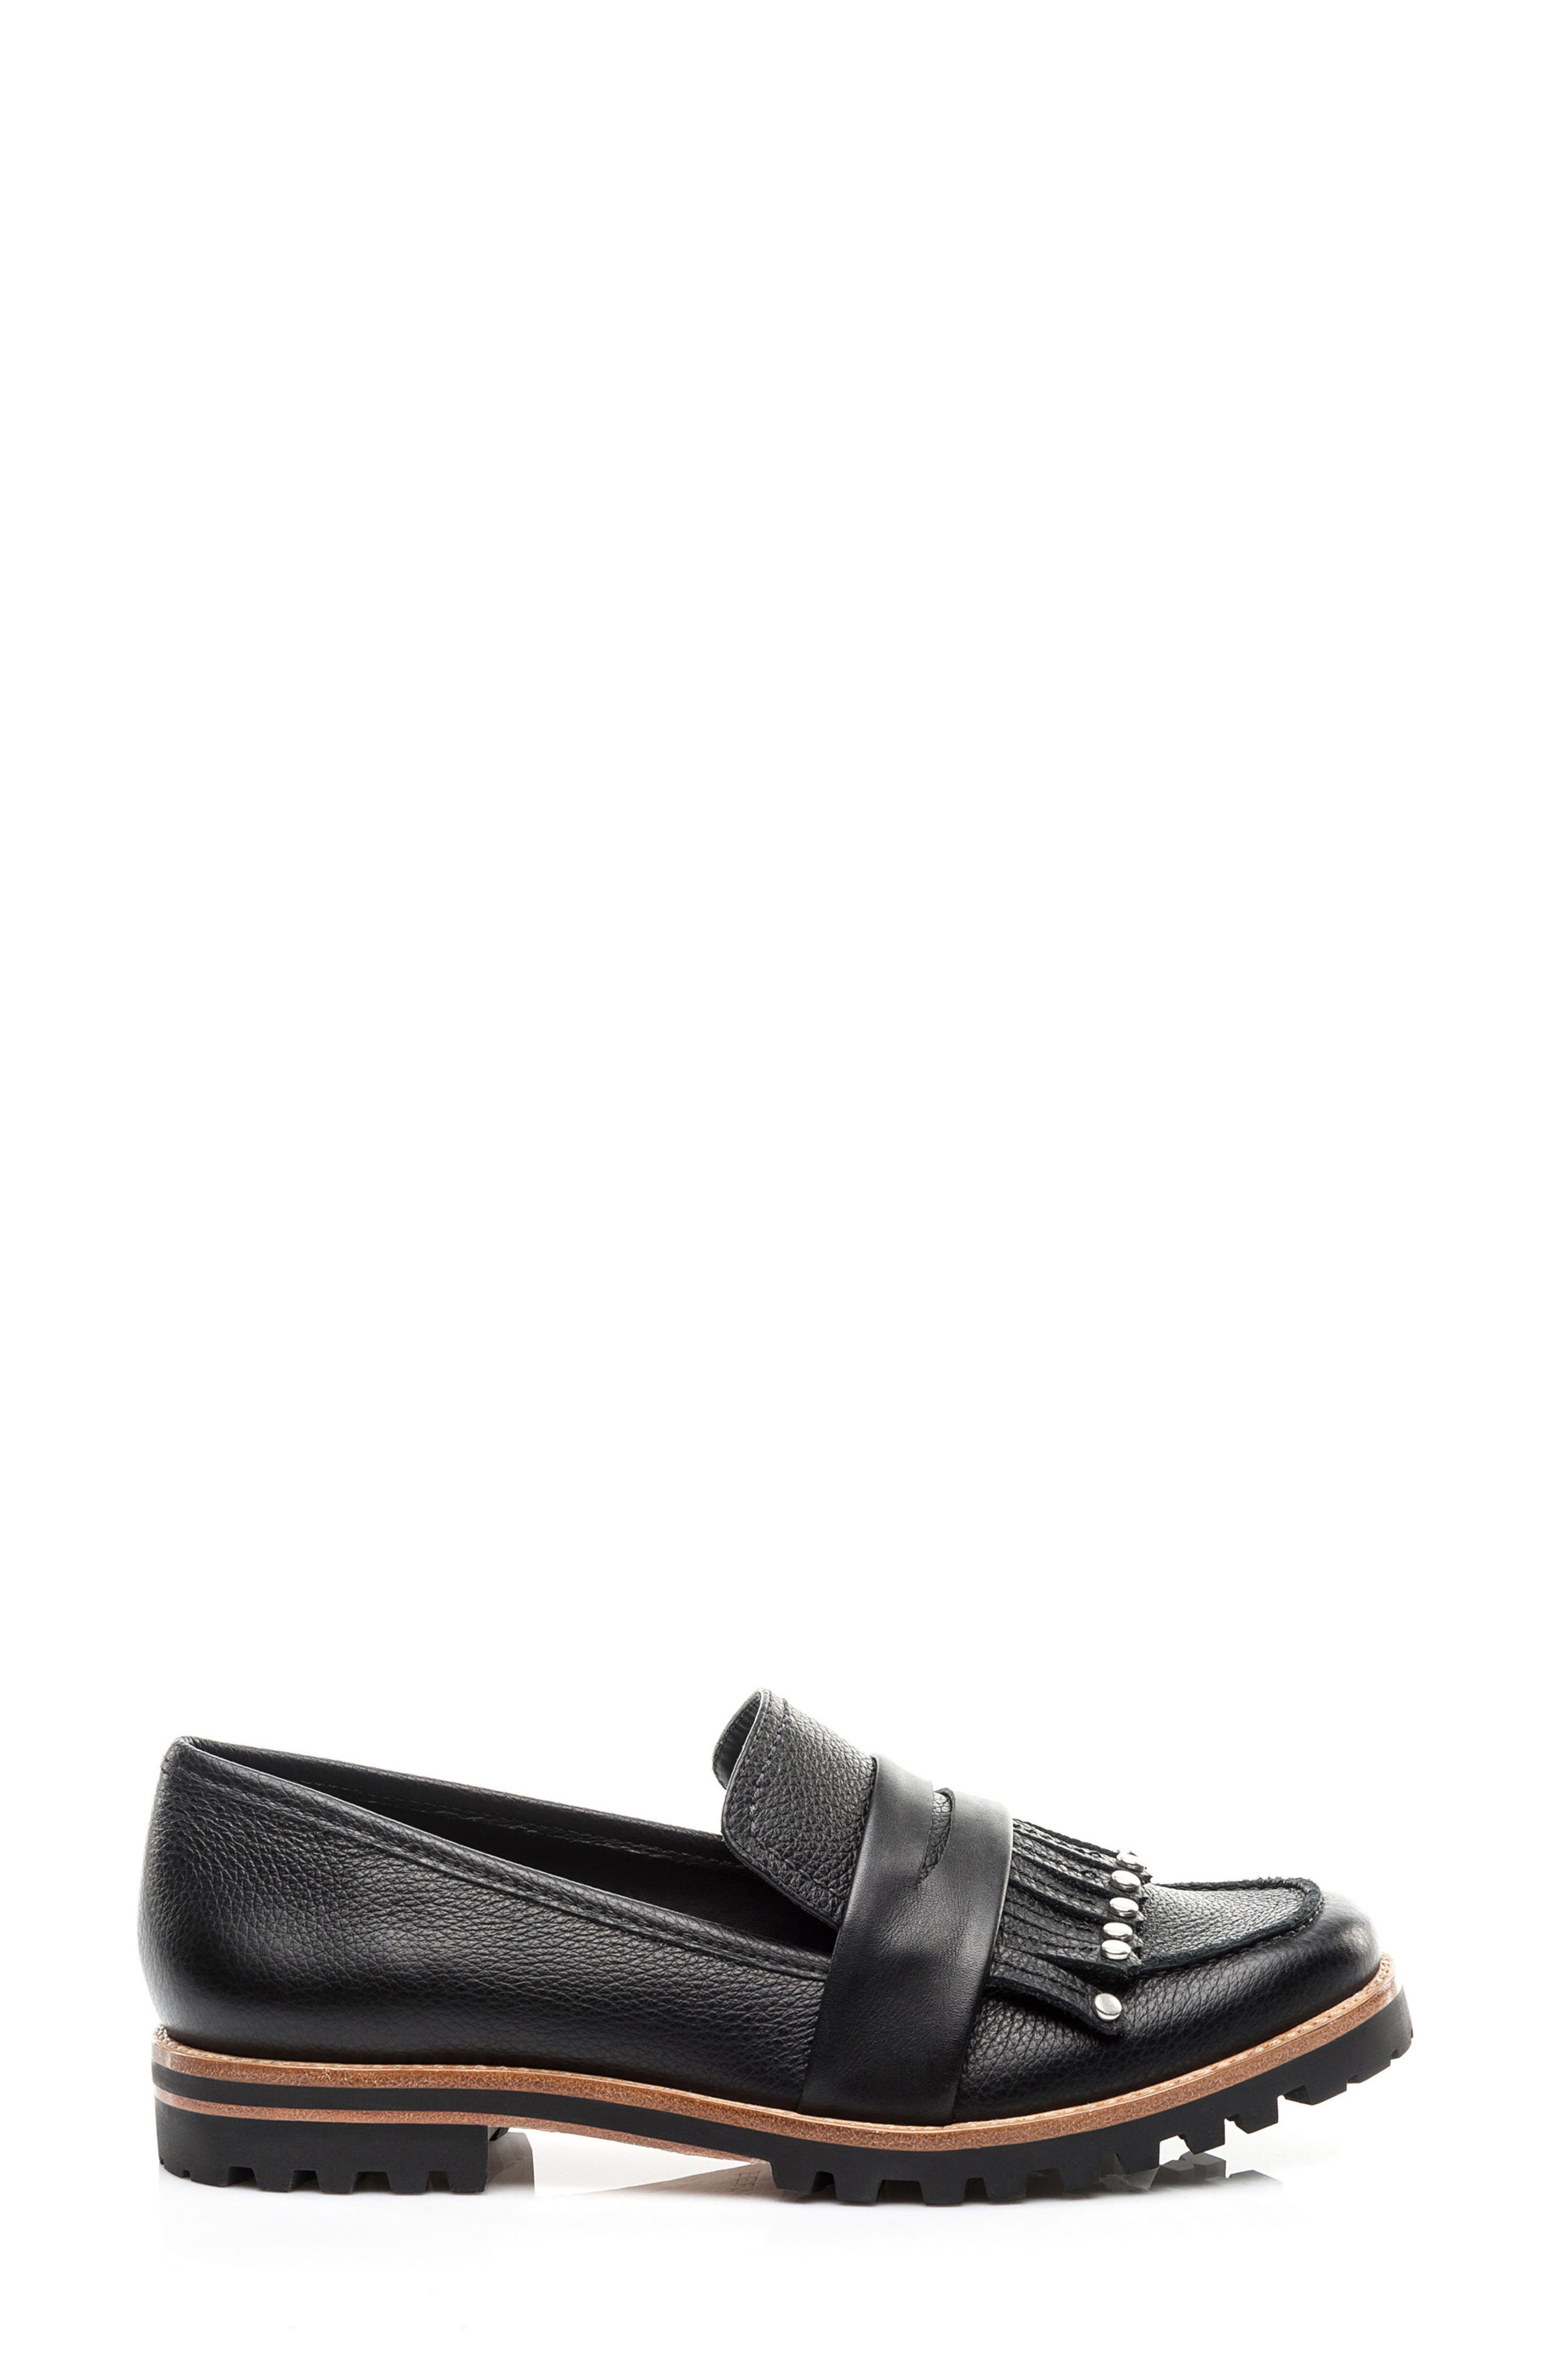 Olley Loafer,                             Alternate thumbnail 3, color,                             Black Leather